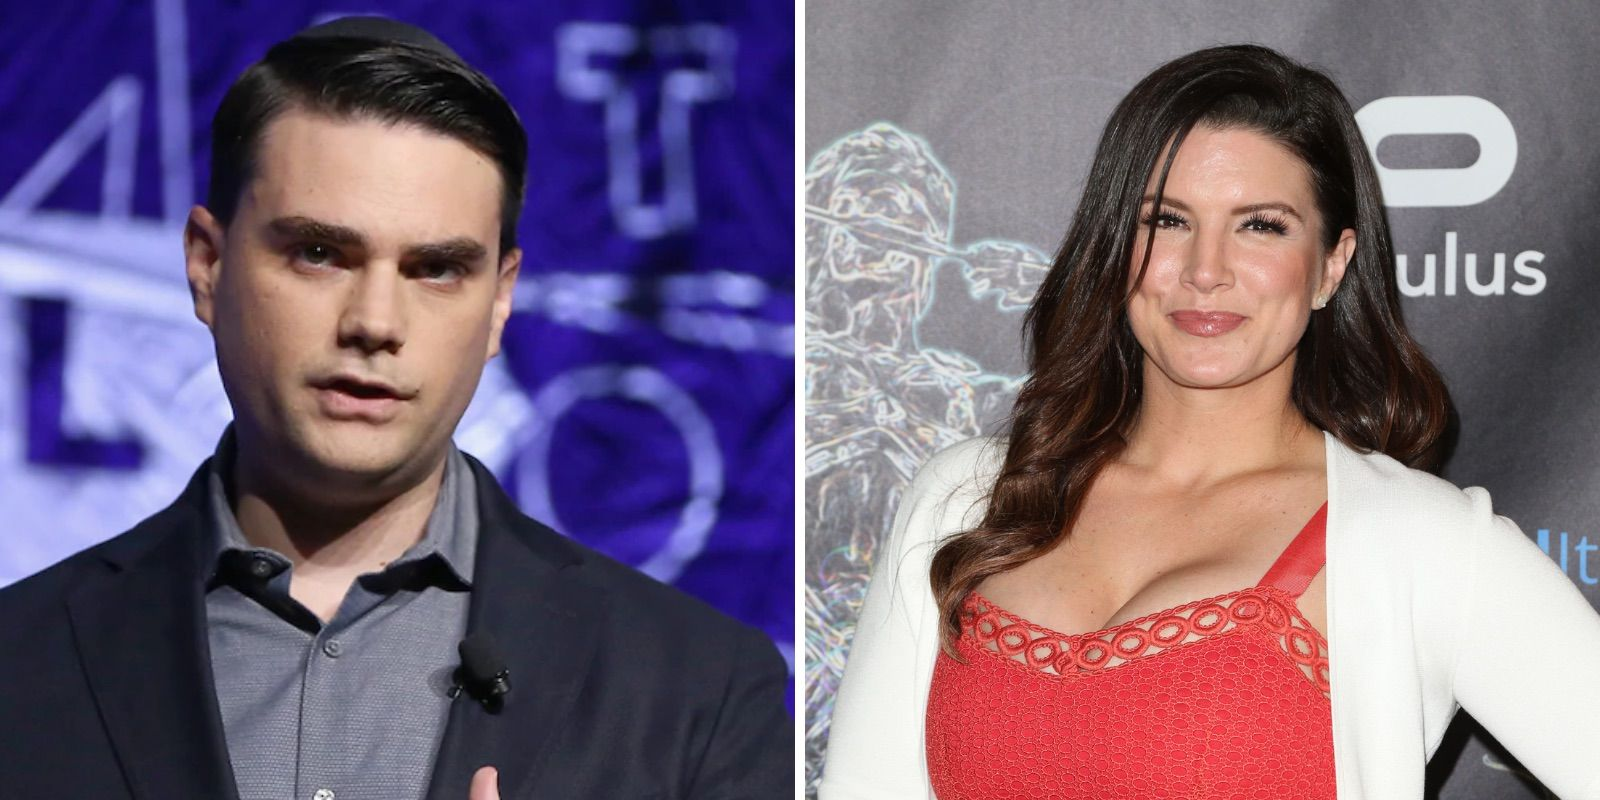 WATCH: Gina Carano calls out Disney for 'bullying' in interview with Ben Shapiro